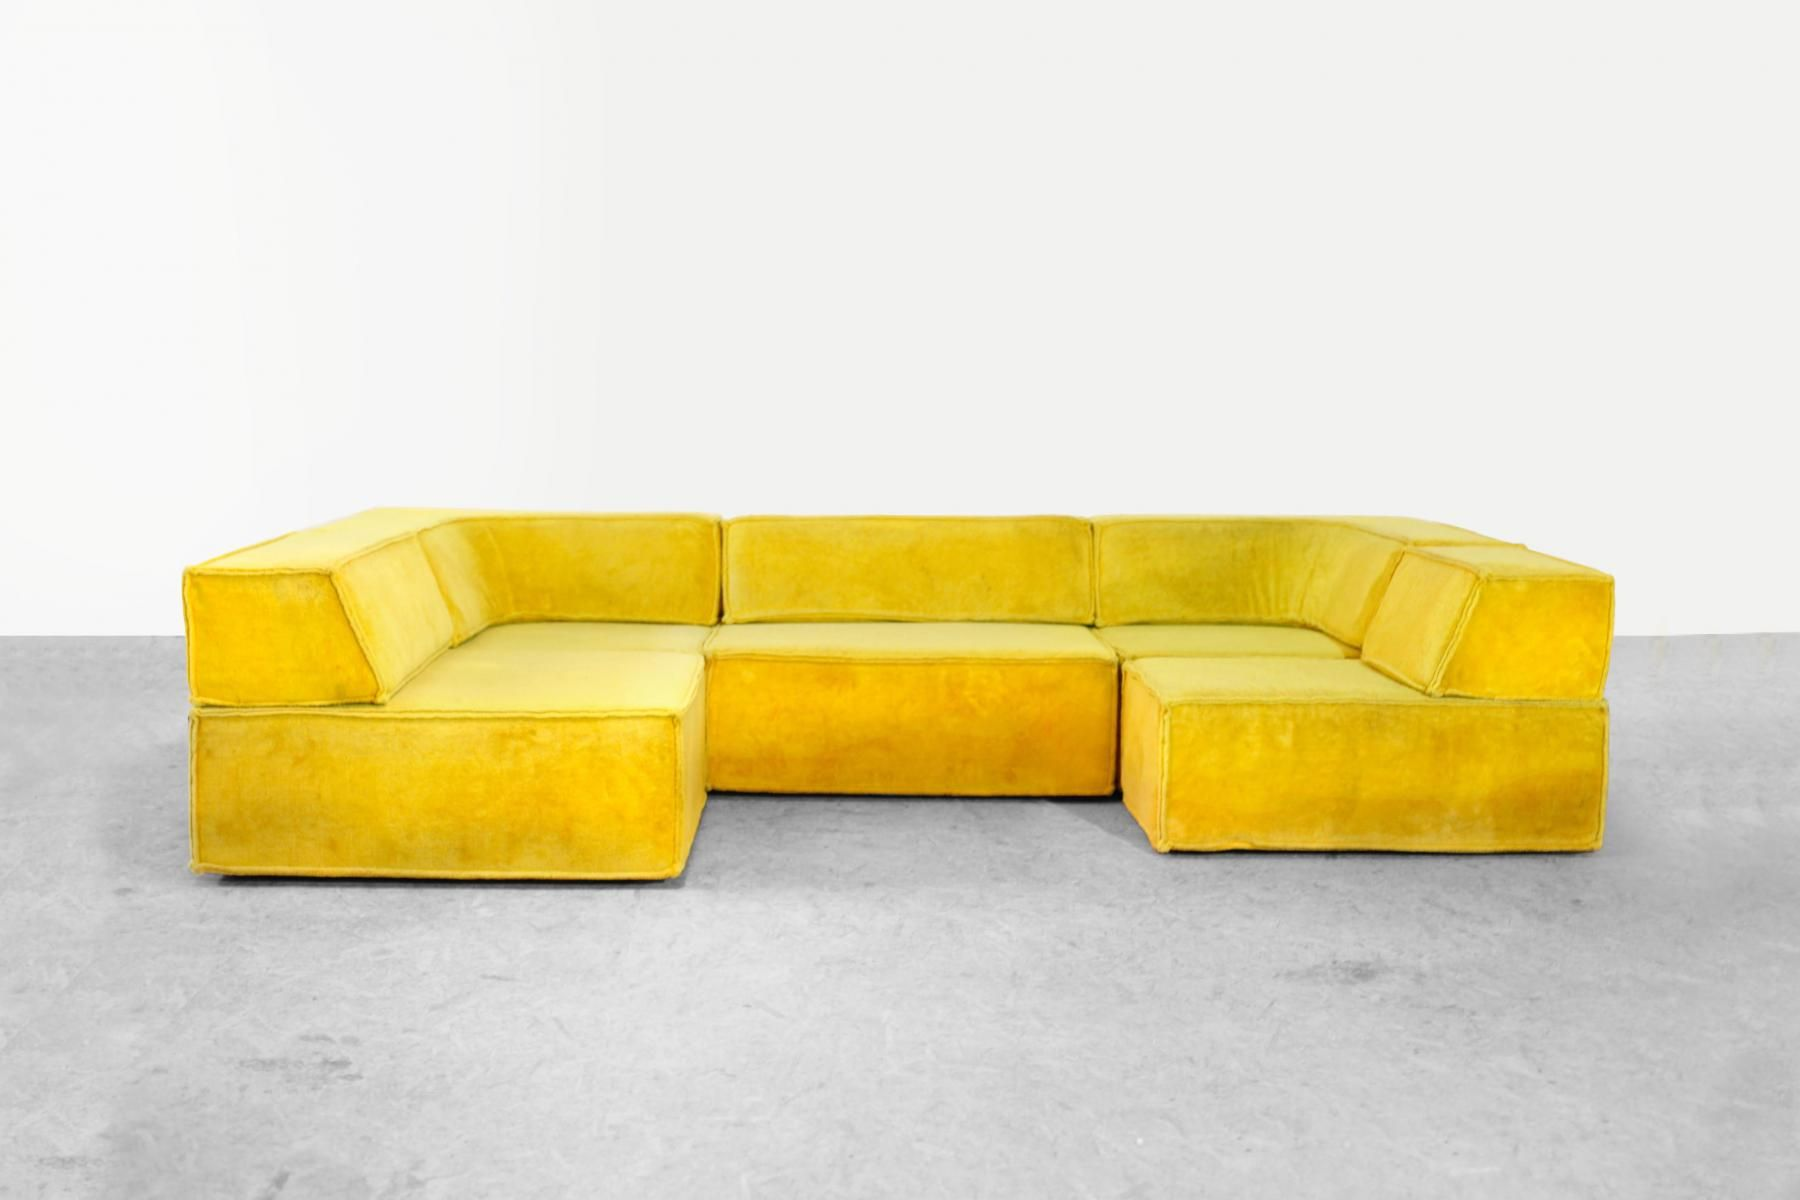 Vintage Modular Trio Sofa By Team Form Ag For Cor 1970s For Sale At Pamono Bedroom Furniture Design Vintage Couch Modular Furniture